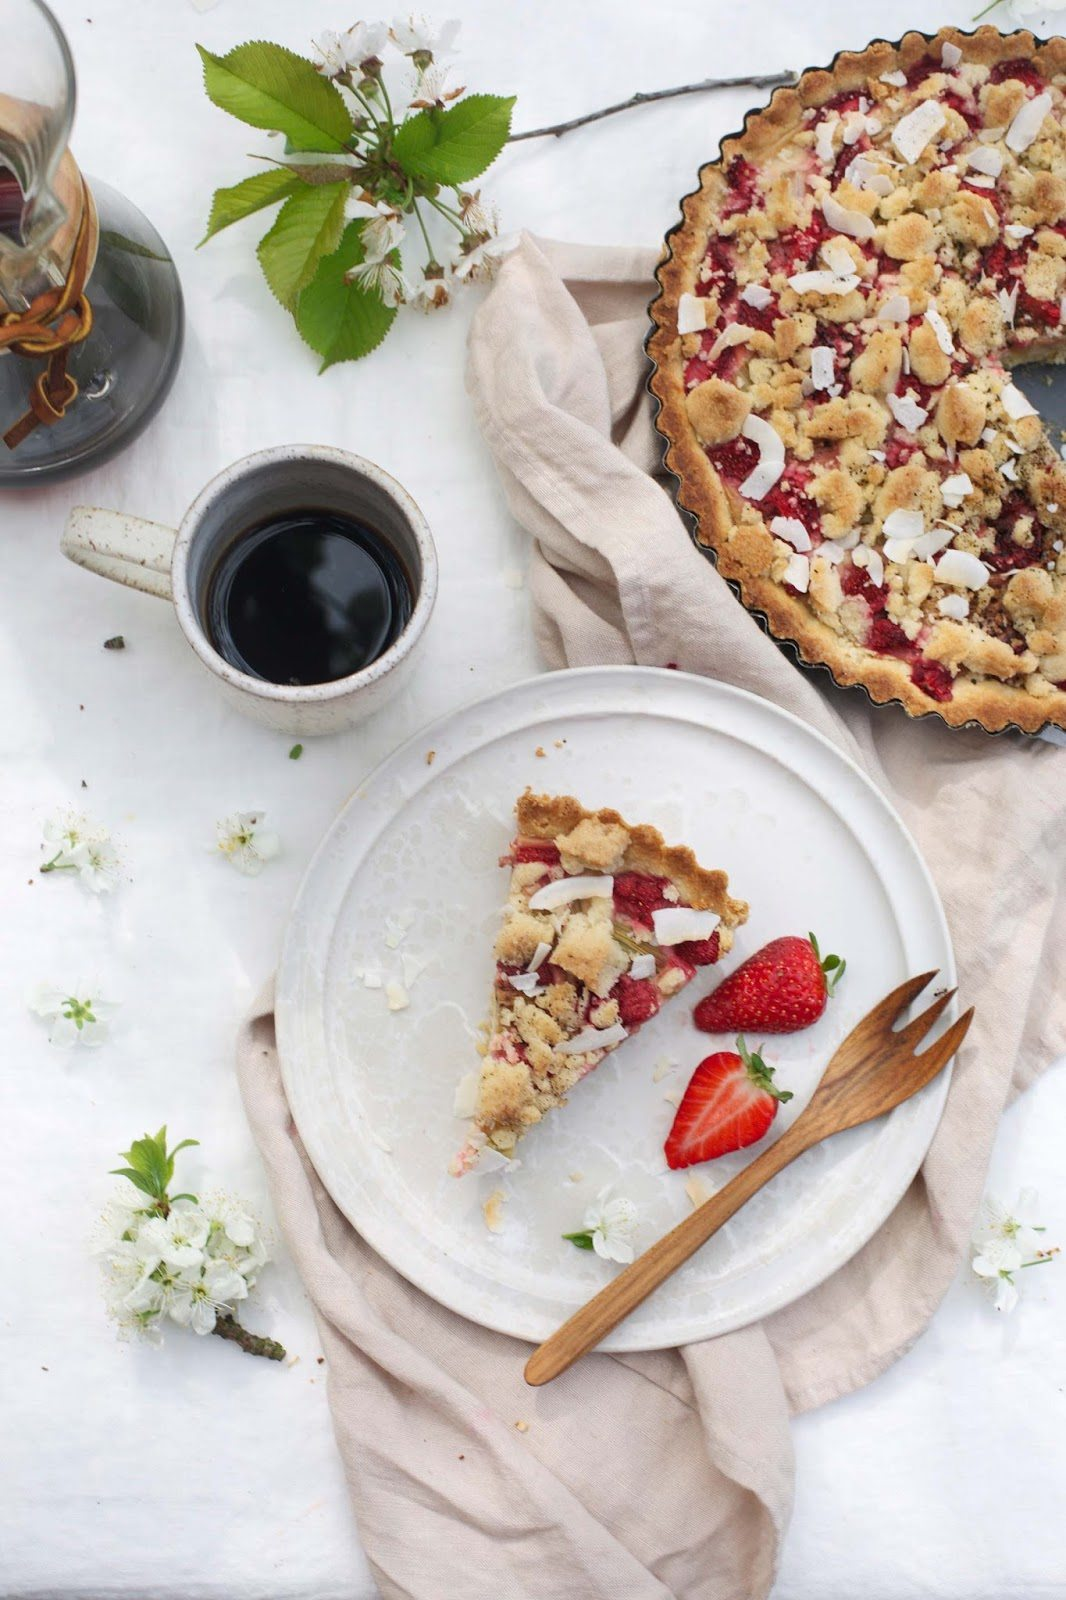 Gluten Free Rhubarb Strawberry Tart With Almond Pudding And Licorice Powder Our Food Stories